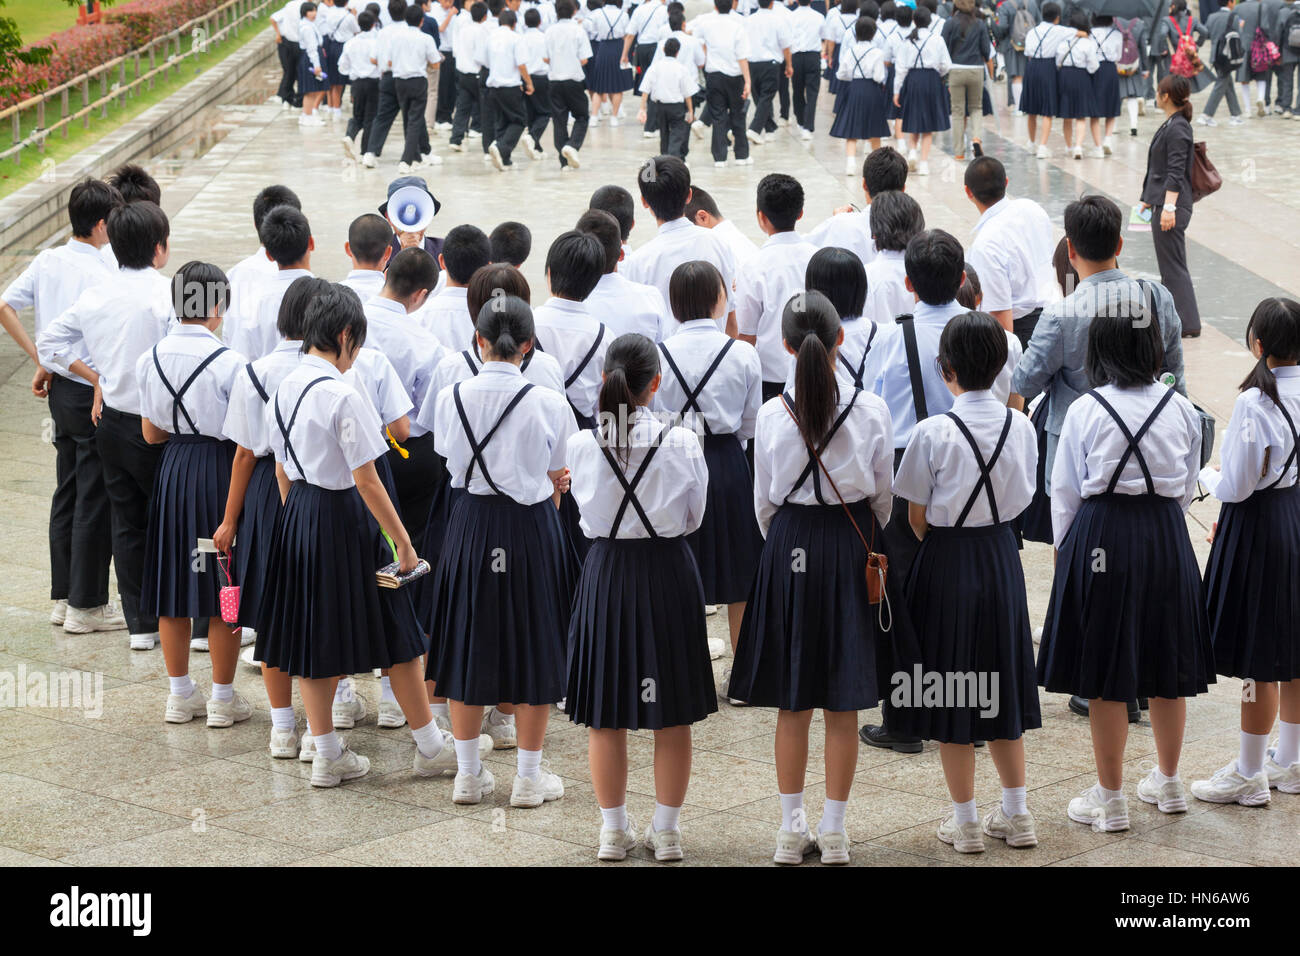 Nara, Japan - May 9, 2012: A large group of Japanese school children in uniforms and a guide with a loud hailer - Stock Image